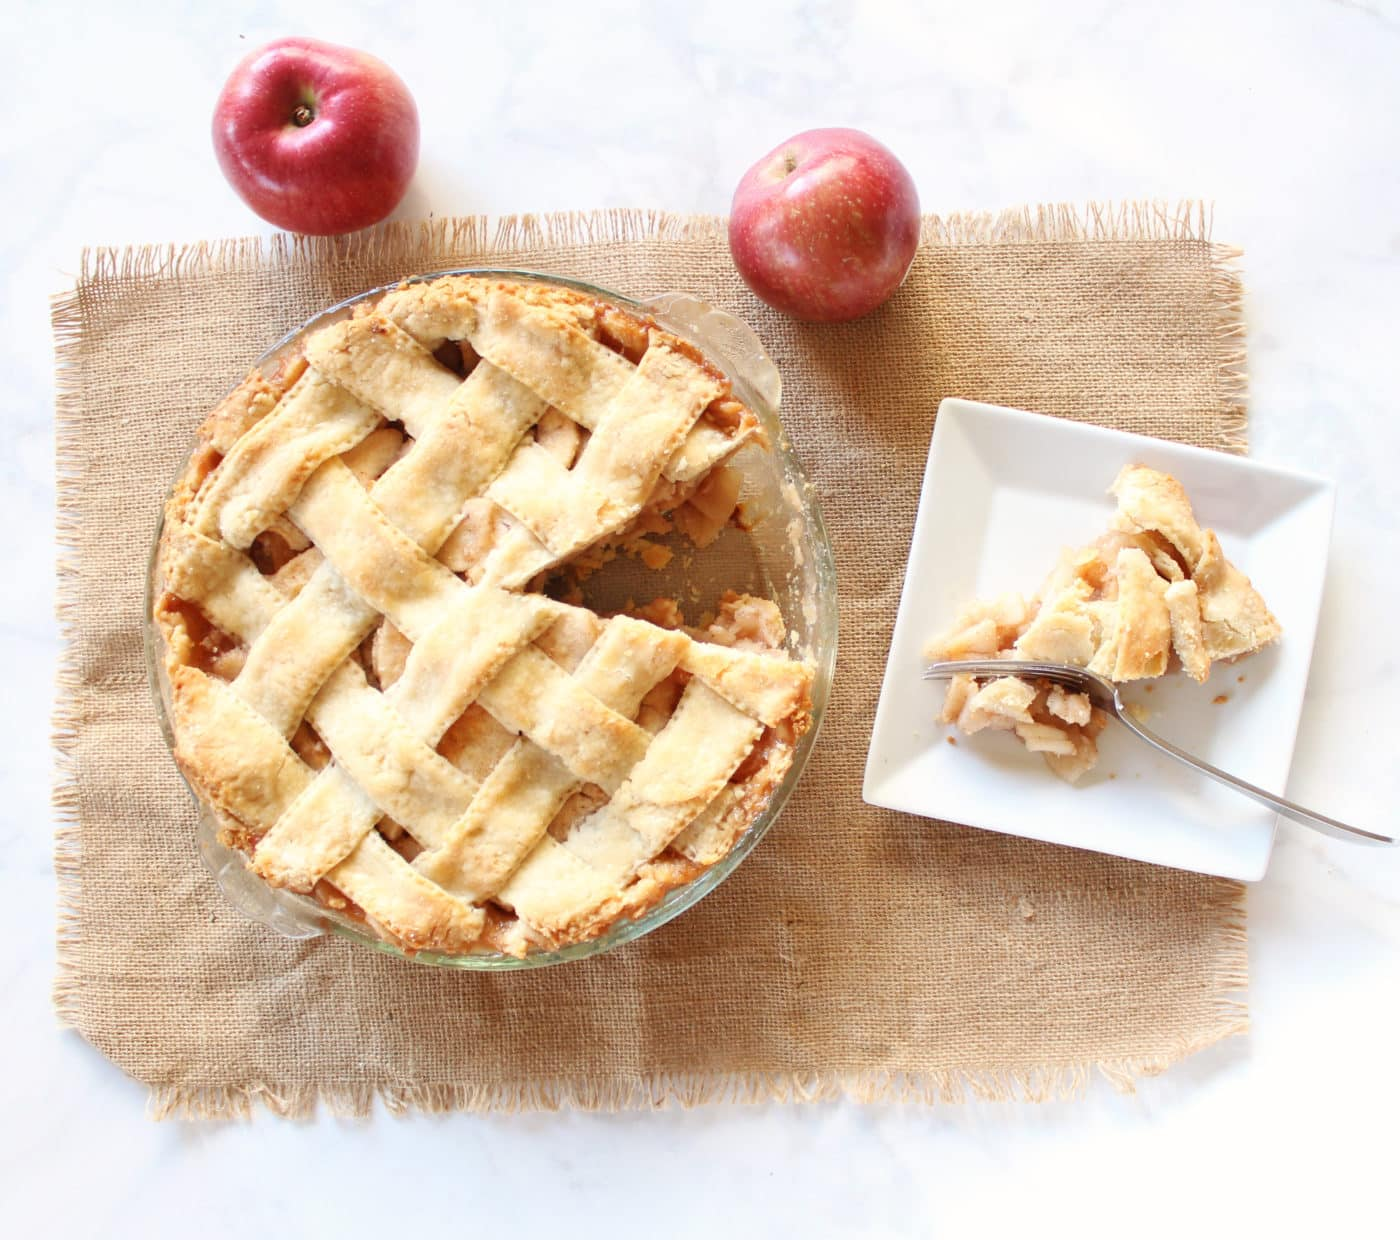 lattice-homemade-apple-pie-recipe-11-2016